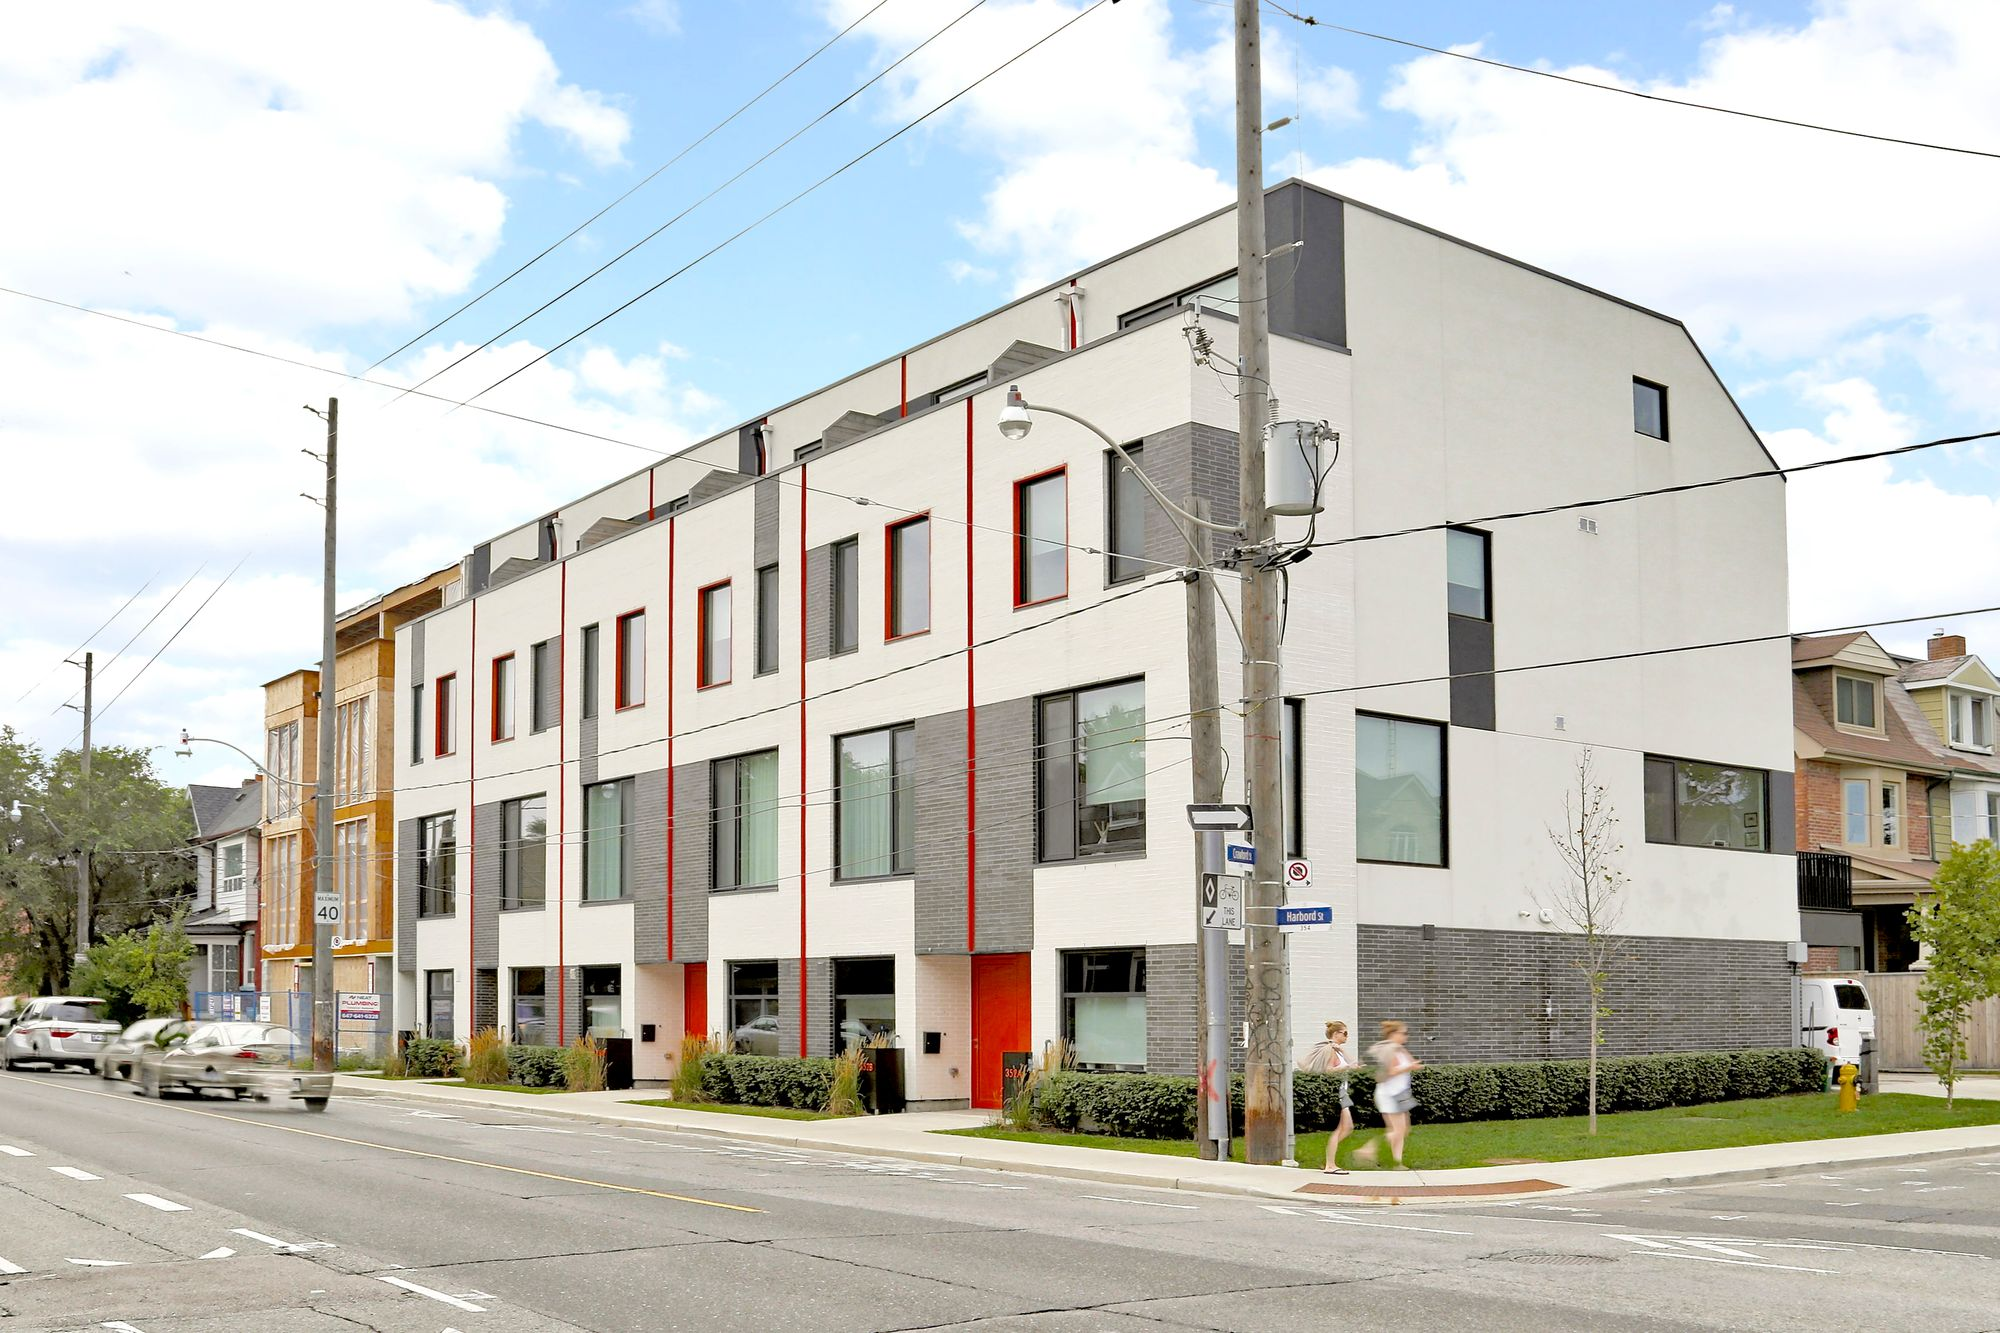 Oben Flats Harbord Towns at 352-358 Harbord St. This condo townhouse is located in  West End, Toronto - image #1 of 5 by Strata.ca